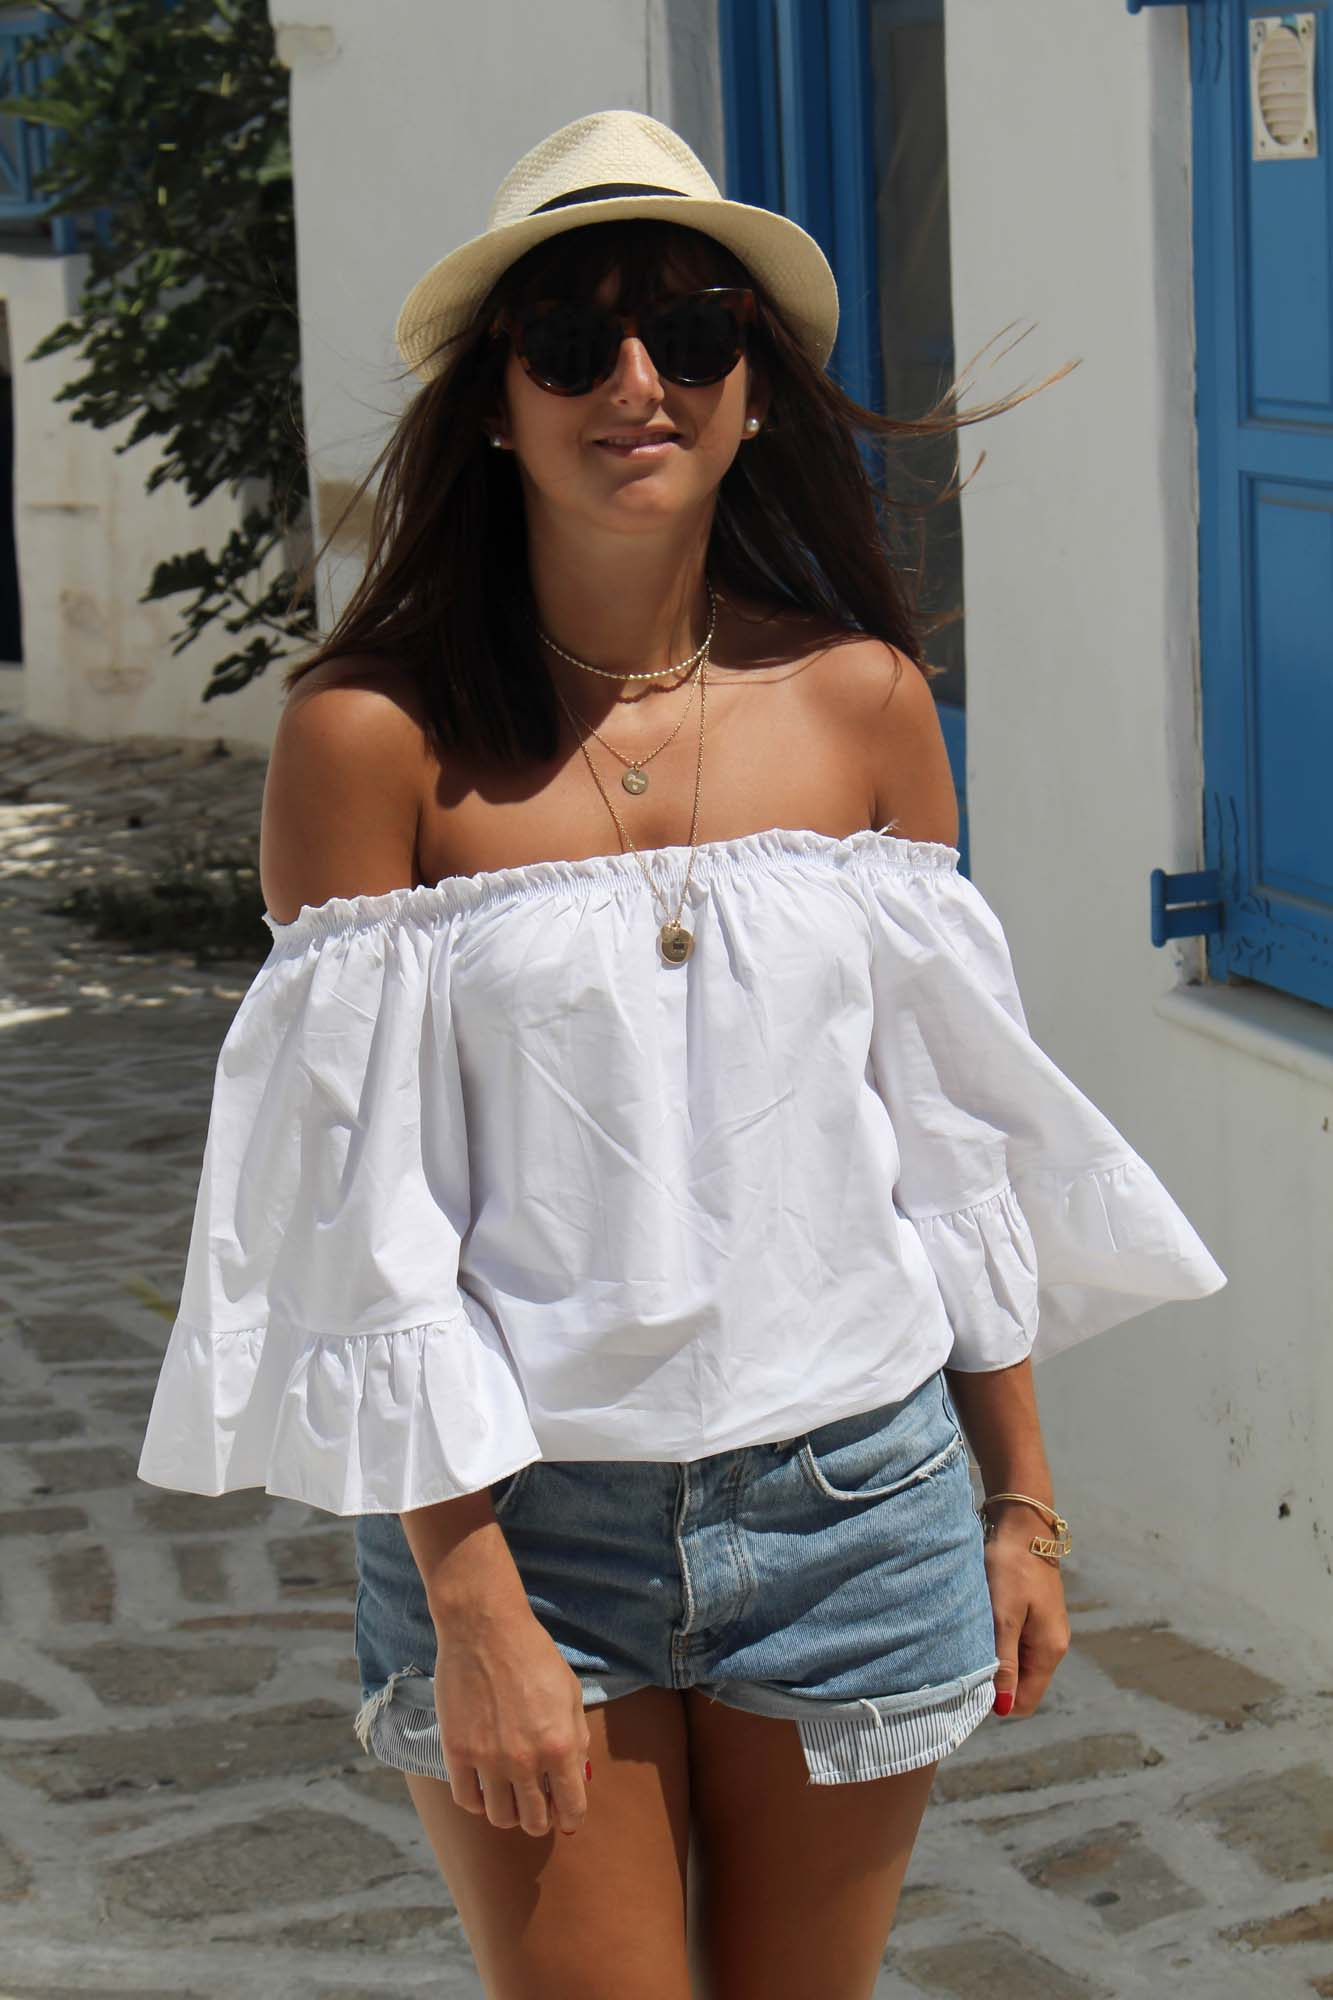 look-greece-paros-linstantflo-8-sur-16